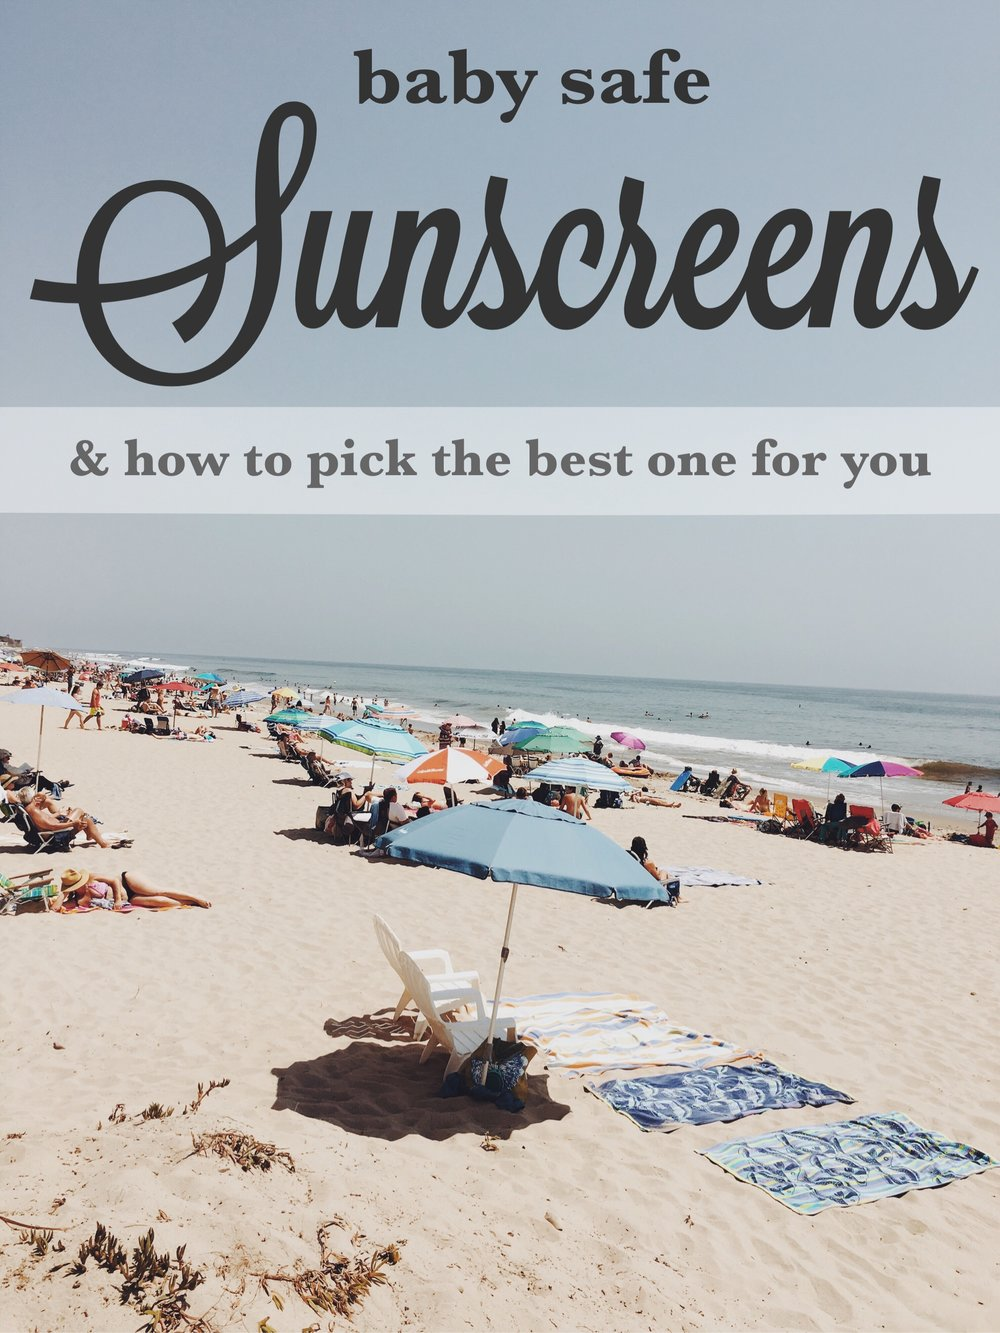 15 Favorite Baby Safe Sunscreens and How to Pick the Best One! via bluecorduroy.com